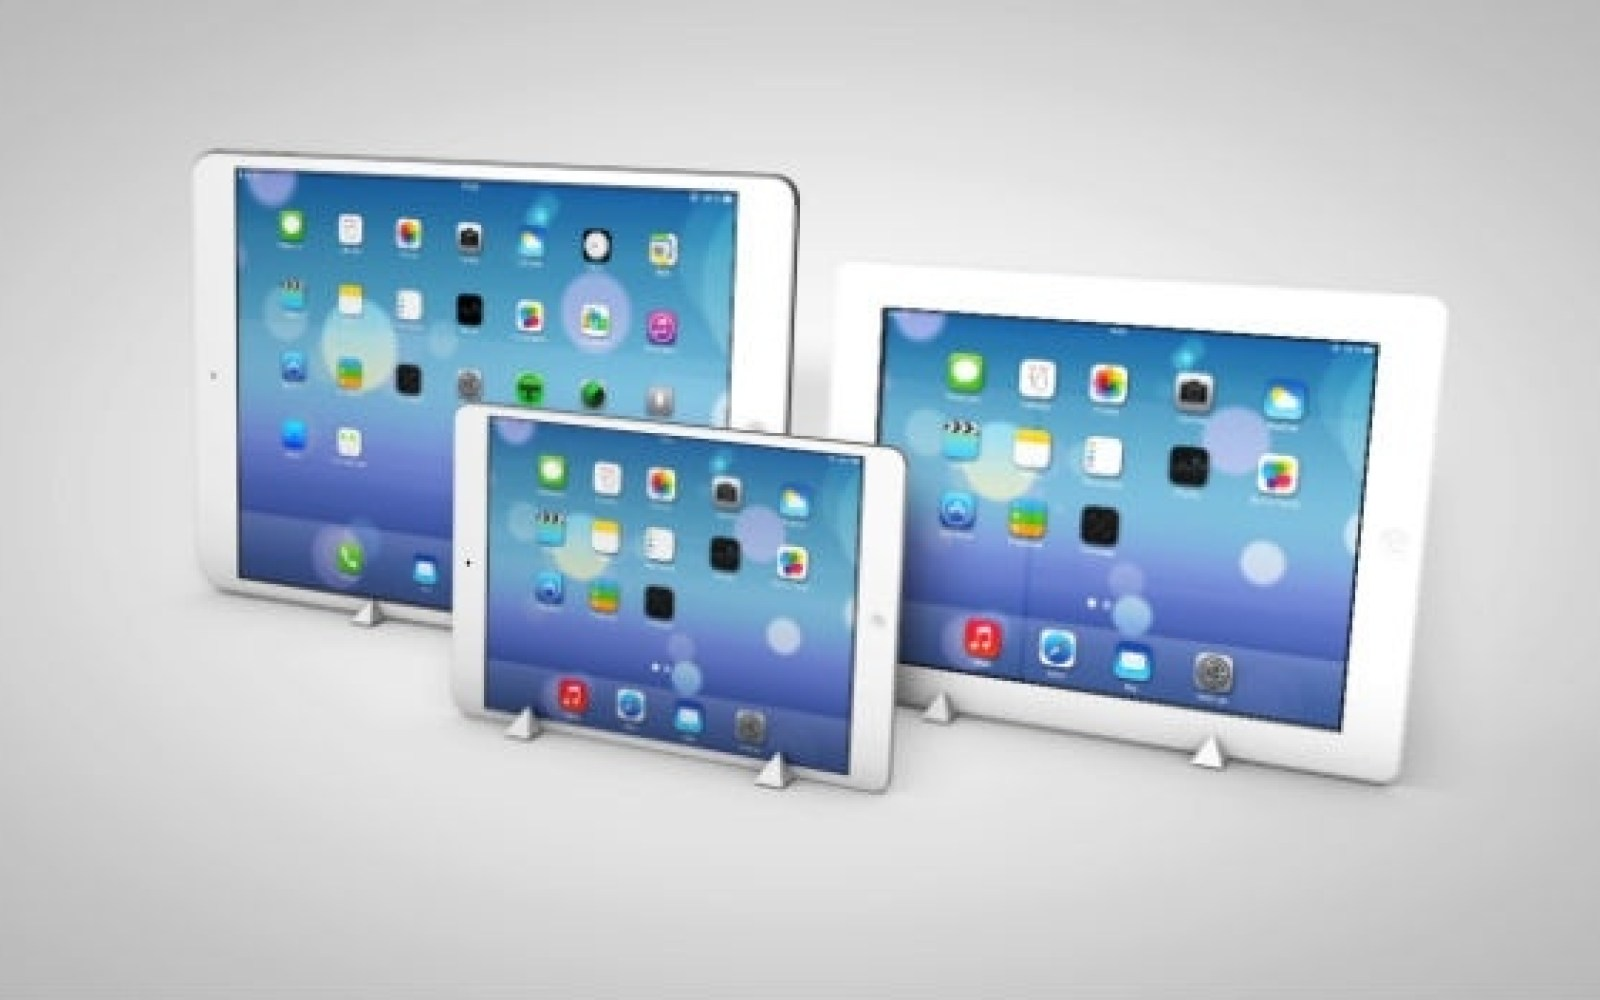 Report claims 12.9-inch panel for larger iPad already in production, release early next year